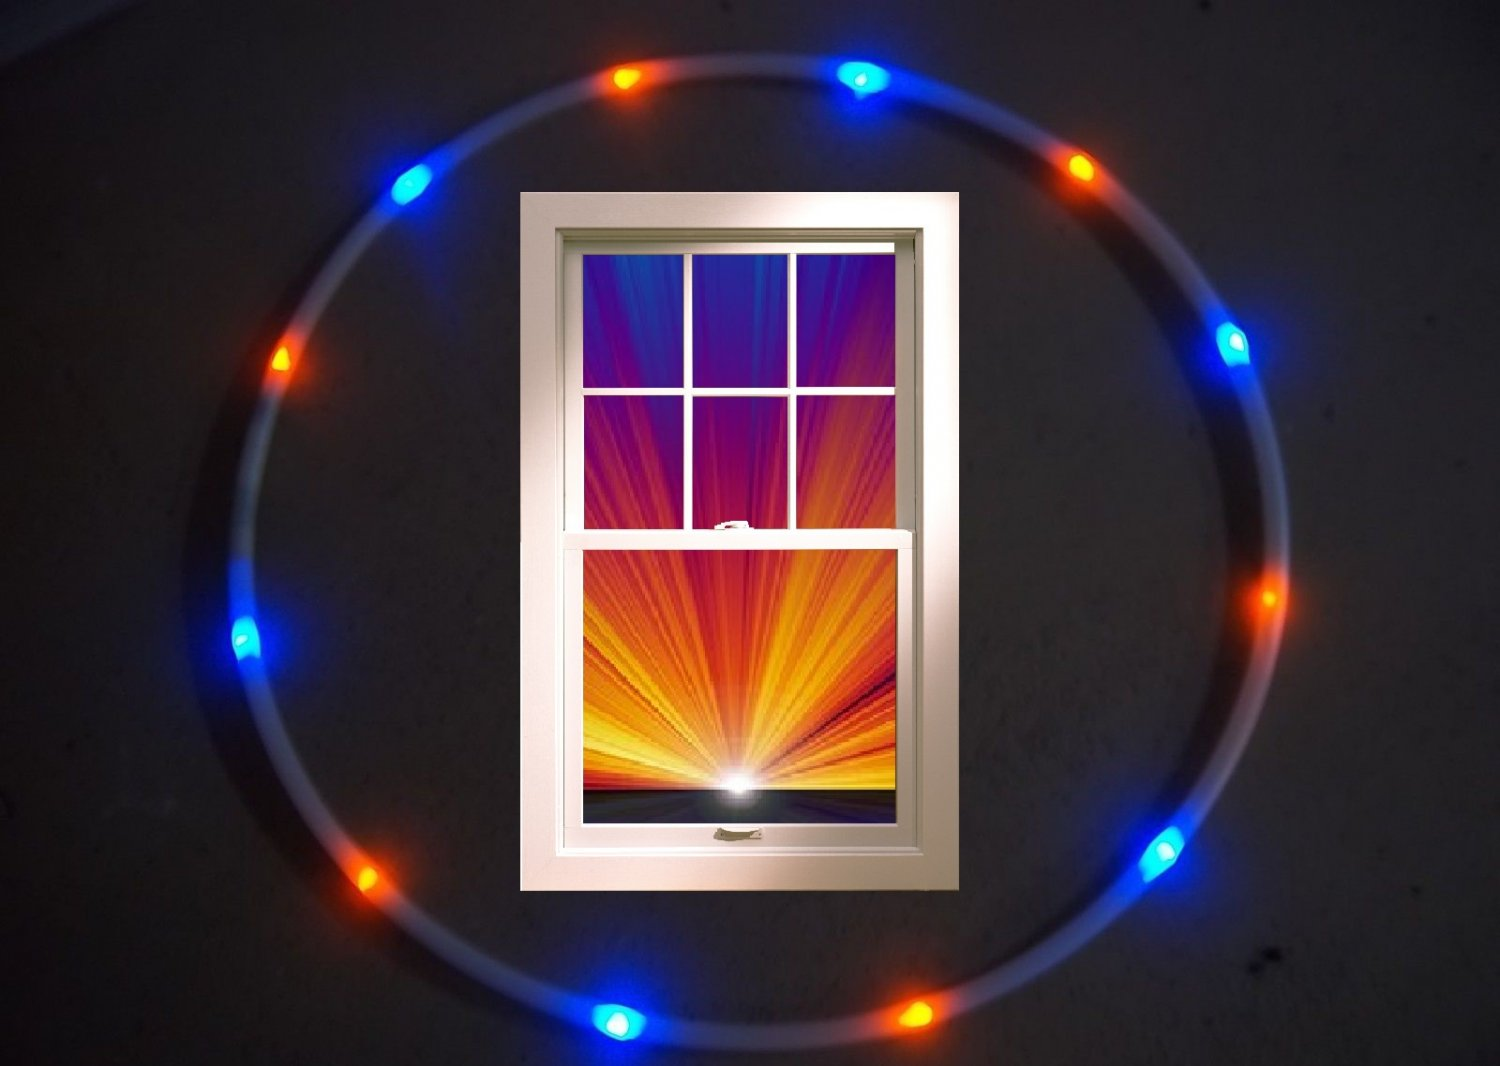 DENVER Orange and blue LED Hula Hoop 36 inches Weighs only 12oz +Battery/charger